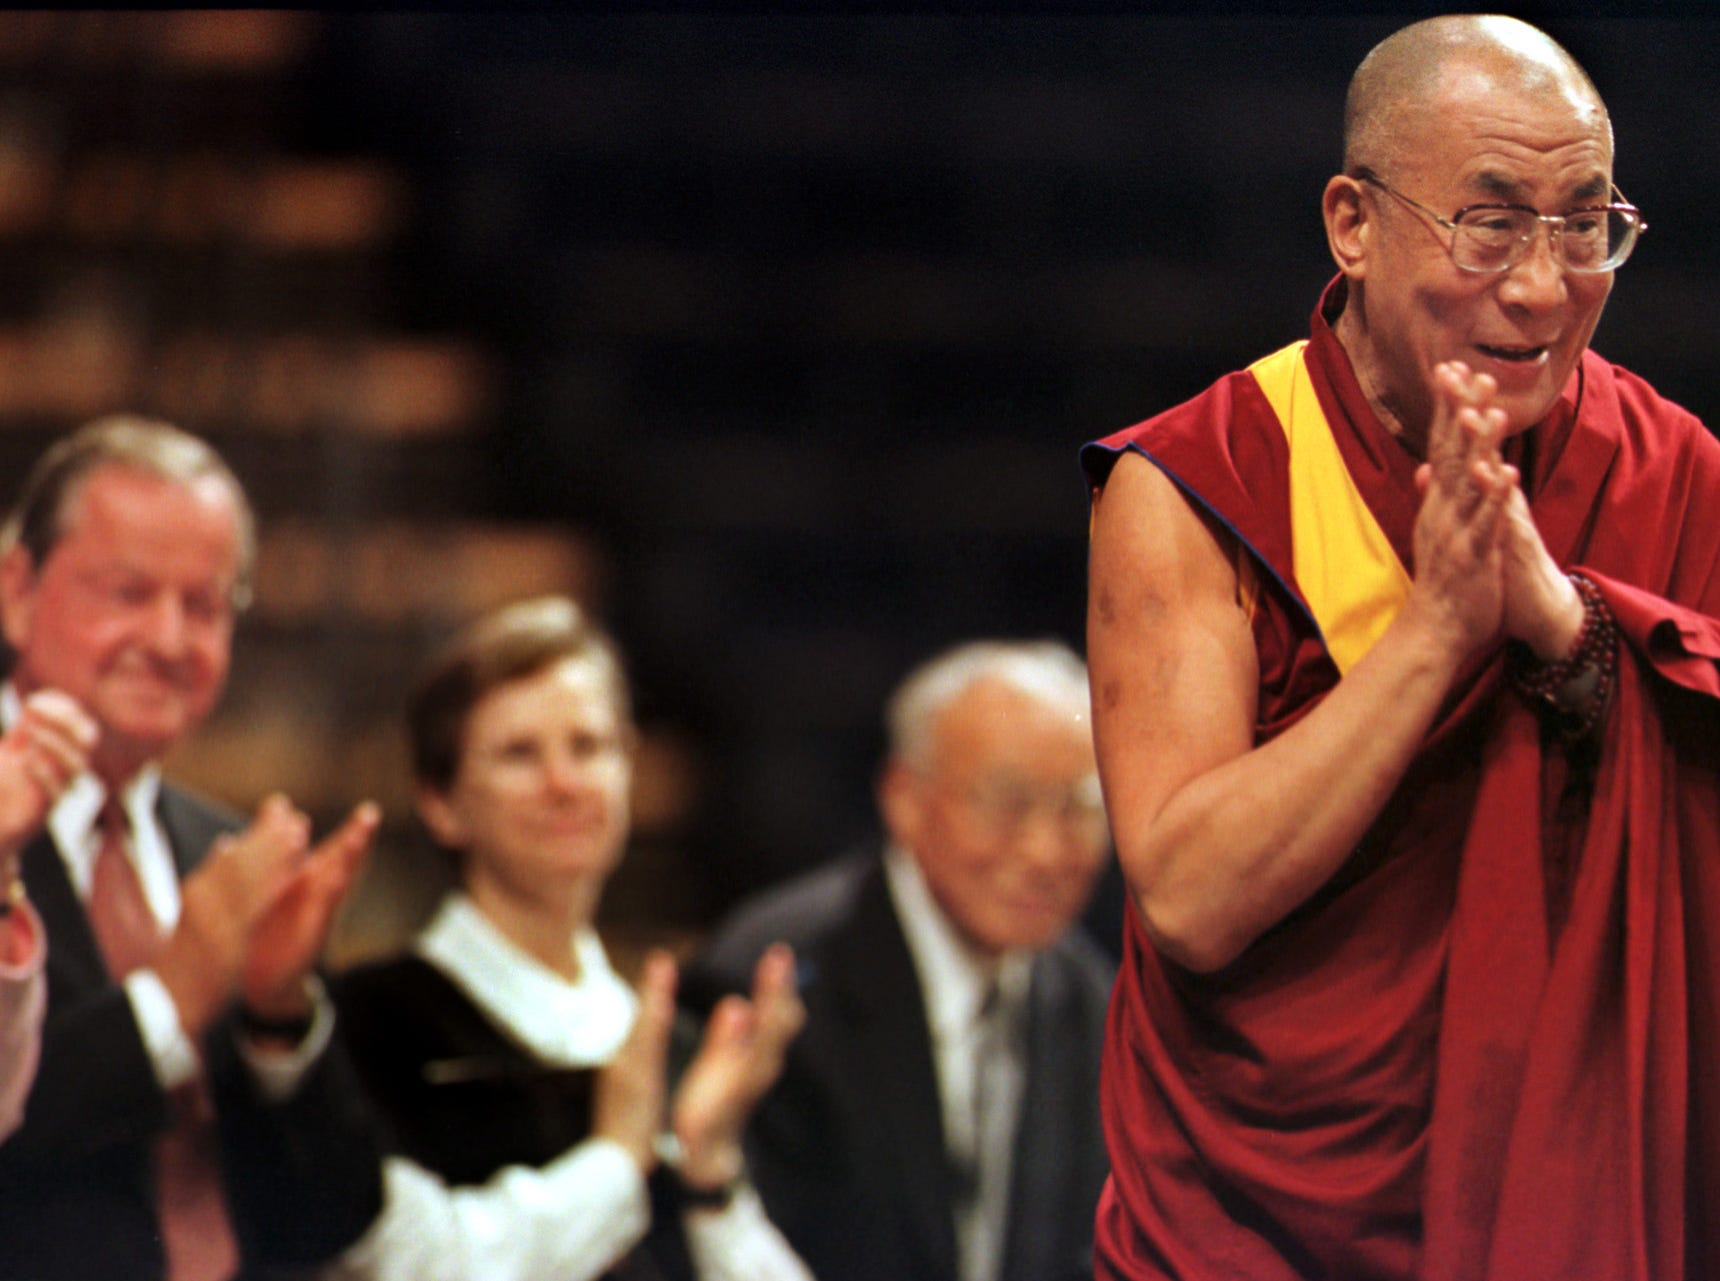 His Holiness, the Fourteenth Dalai Lama (cq, right), acknowledges the crowd at Market Square Arena, Monday, August 16, 1999, during a ceremony welcoming him to Indiana.  In the background are (from left) Governor Frank OÕBannon , Sister Mary Margaret Funk, and the Dalai LamaÕs eldest brother, Thubten Norbu.